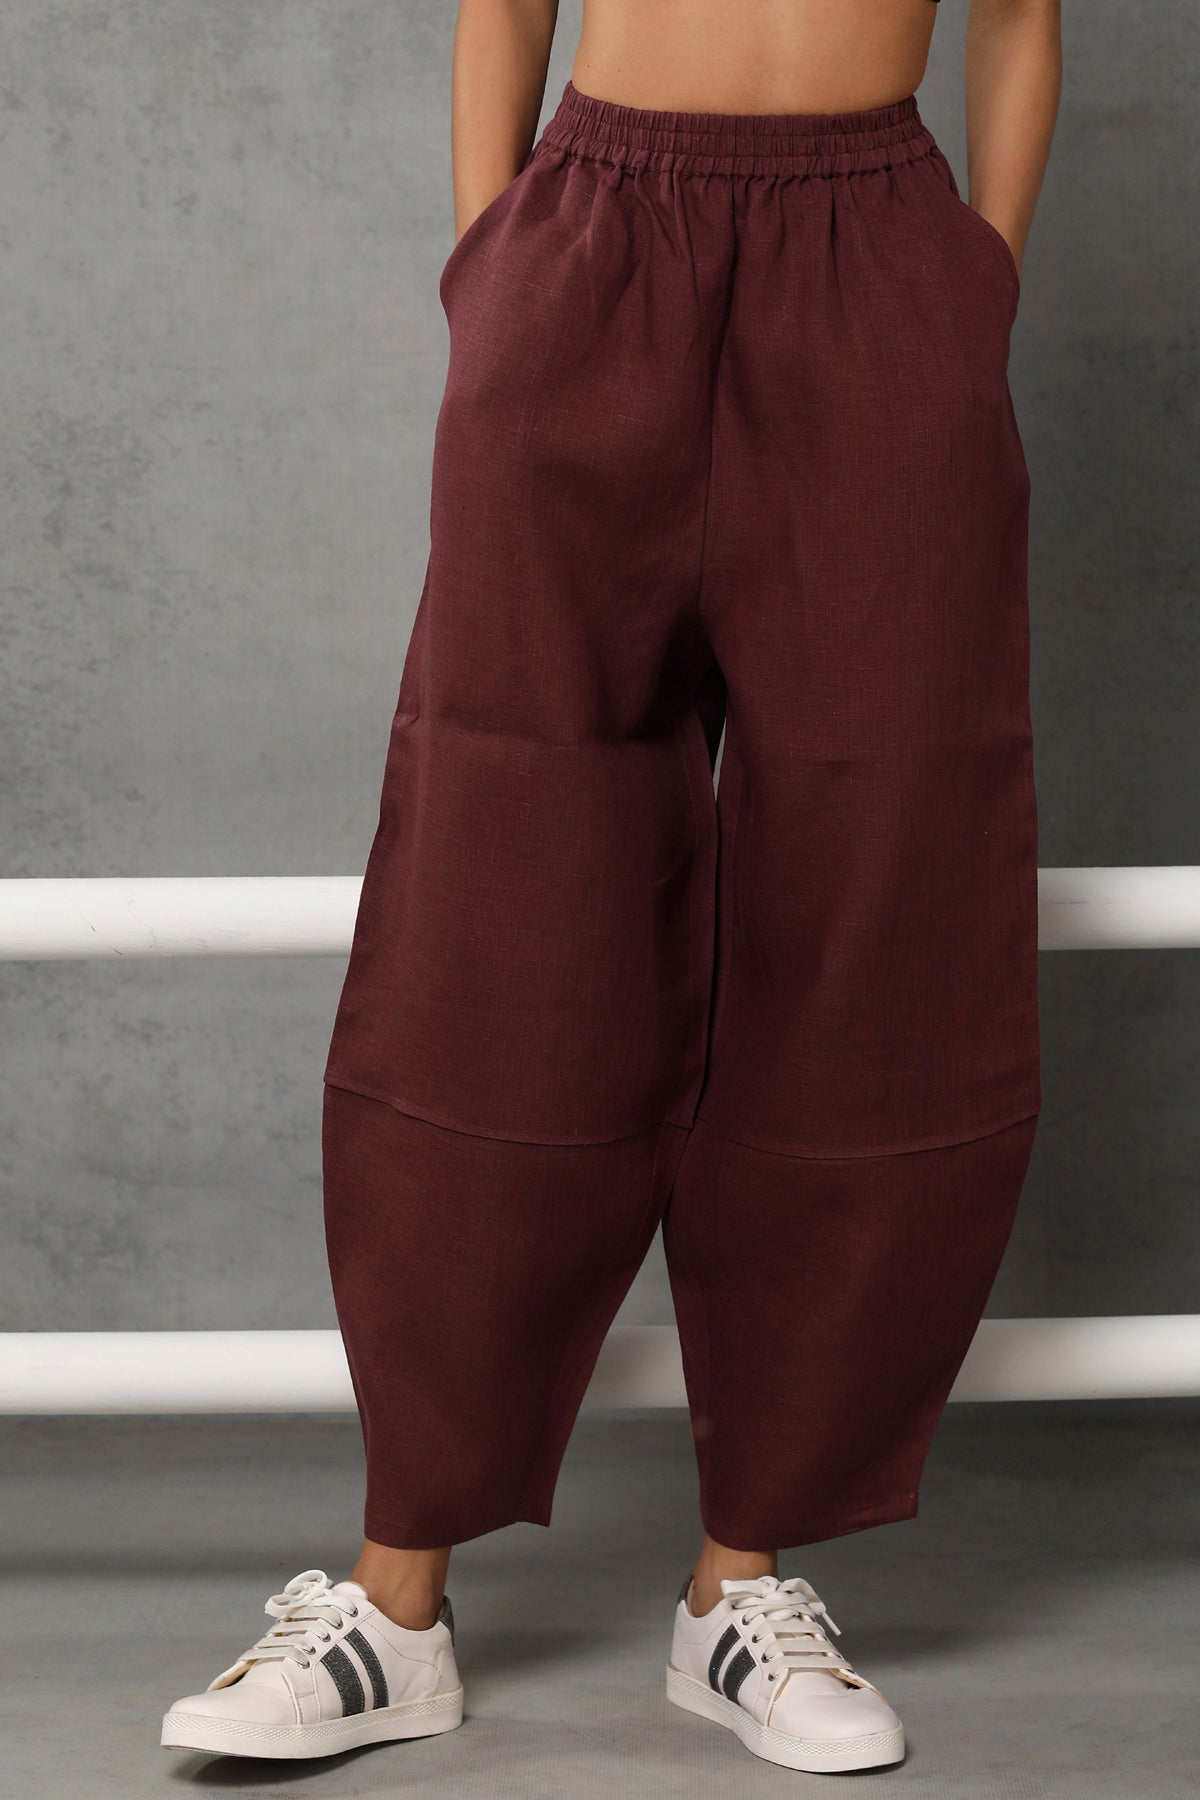 The Haley Trousers